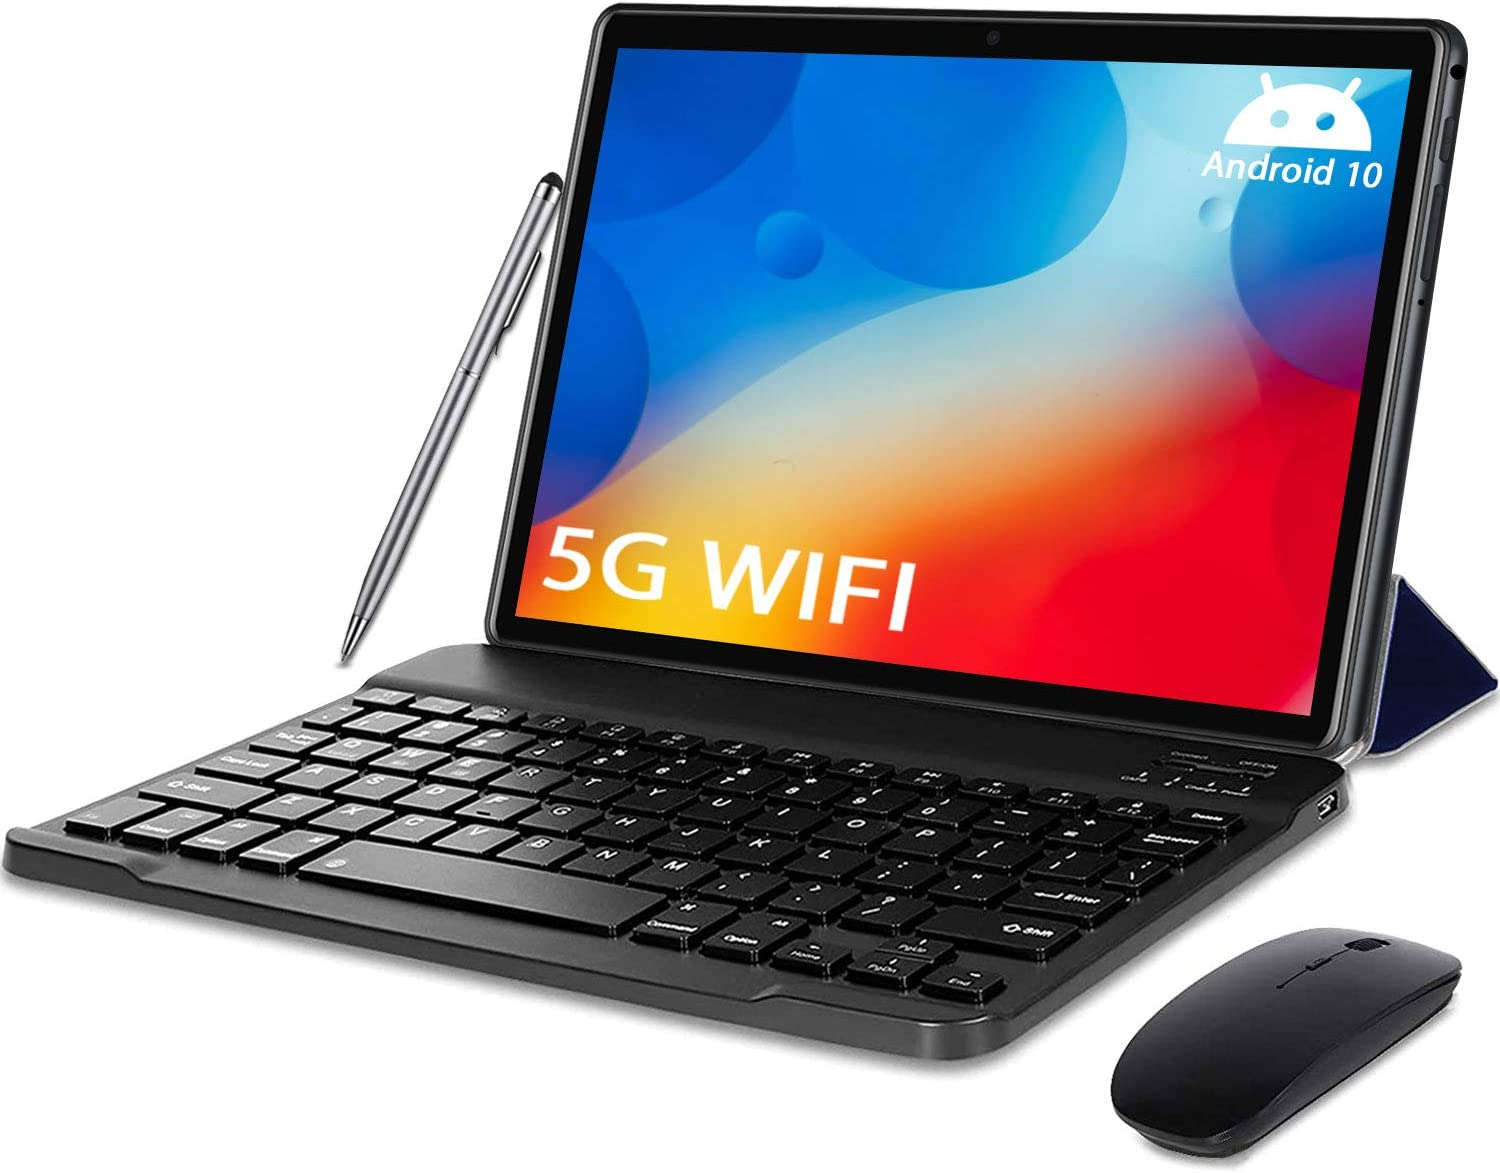 sale Trust 5G WiFi Android 10.0 Tablet Inch Keyboard in1 2 with Tablets